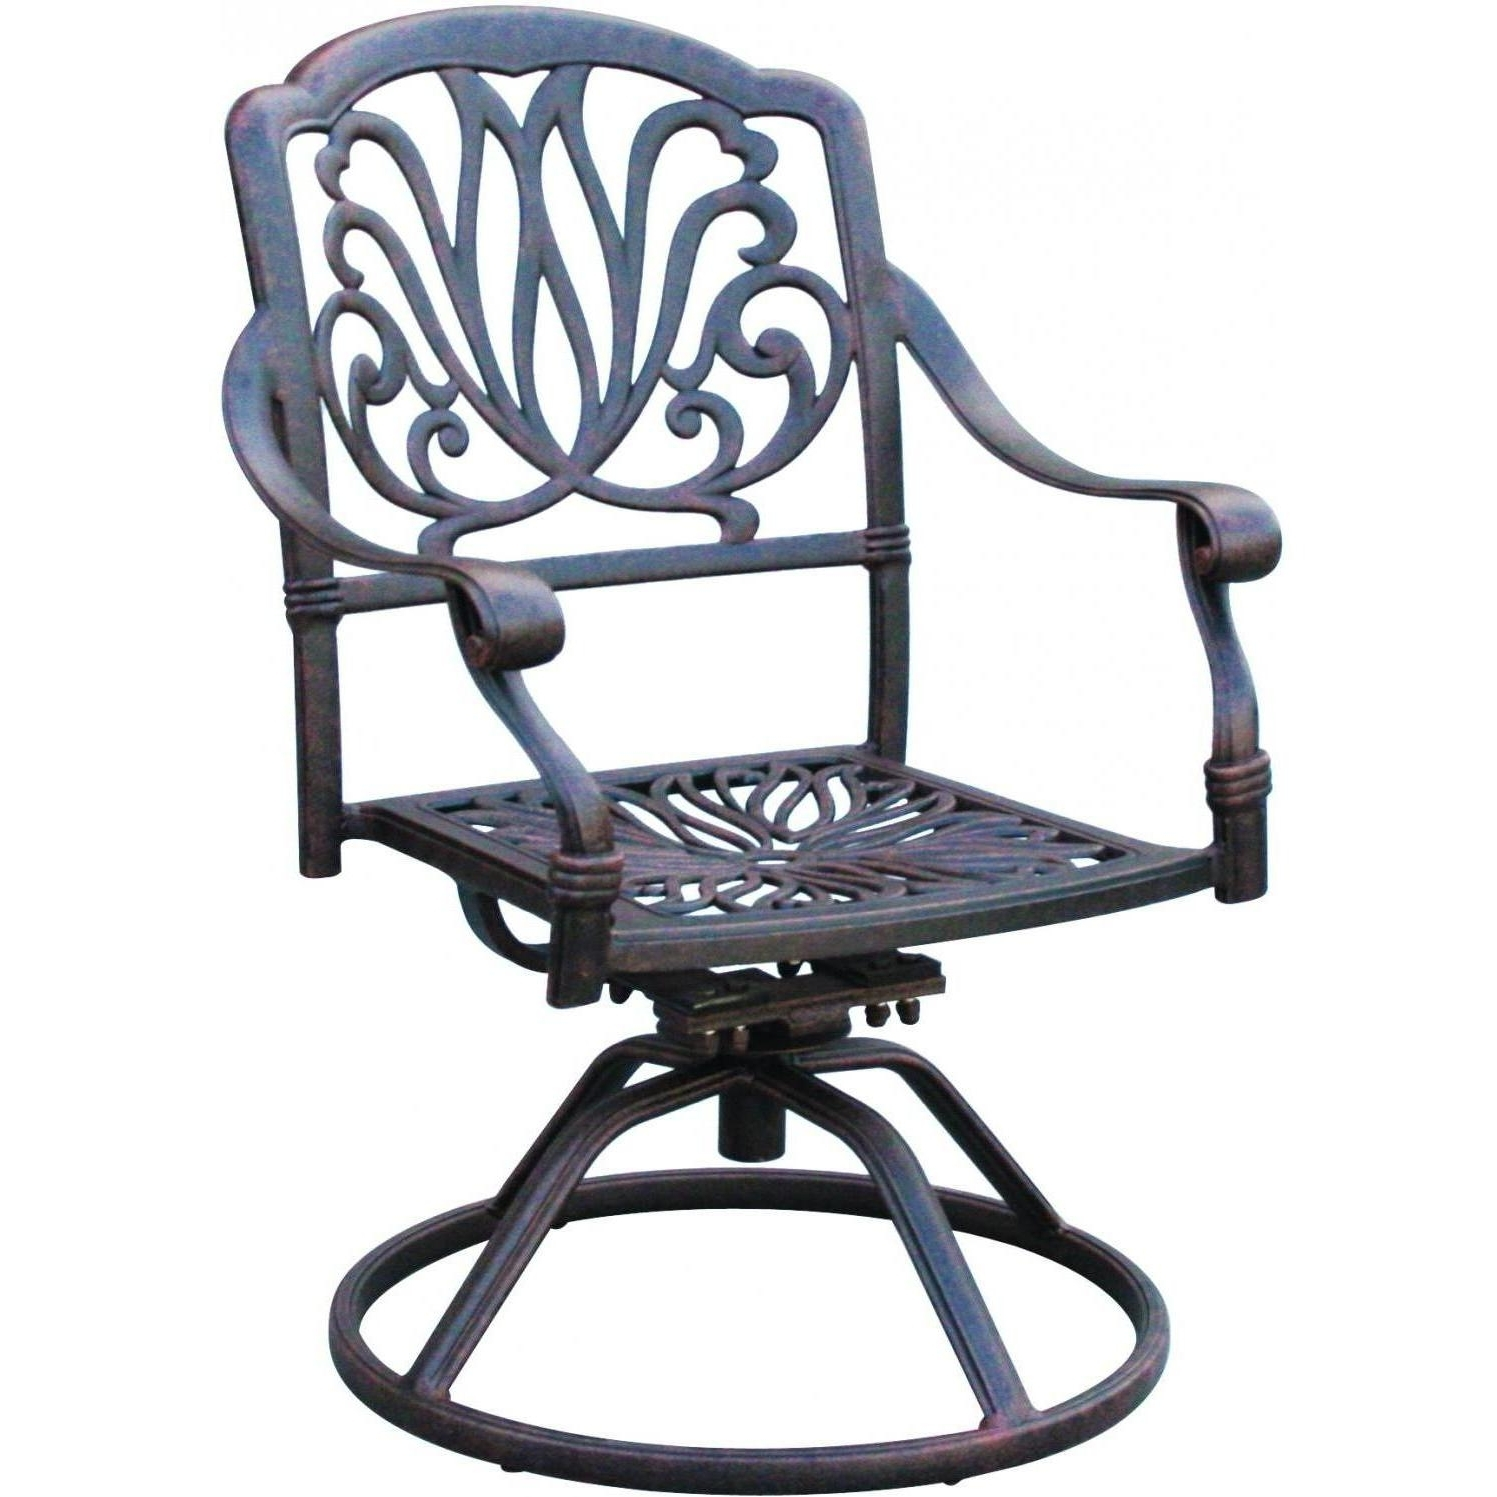 Most Recently Released Iron Rocking Patio Chairs Inside Darlee Elisabeth Cast Aluminum Patio Swivel Rocker Dining Chair (View 11 of 15)